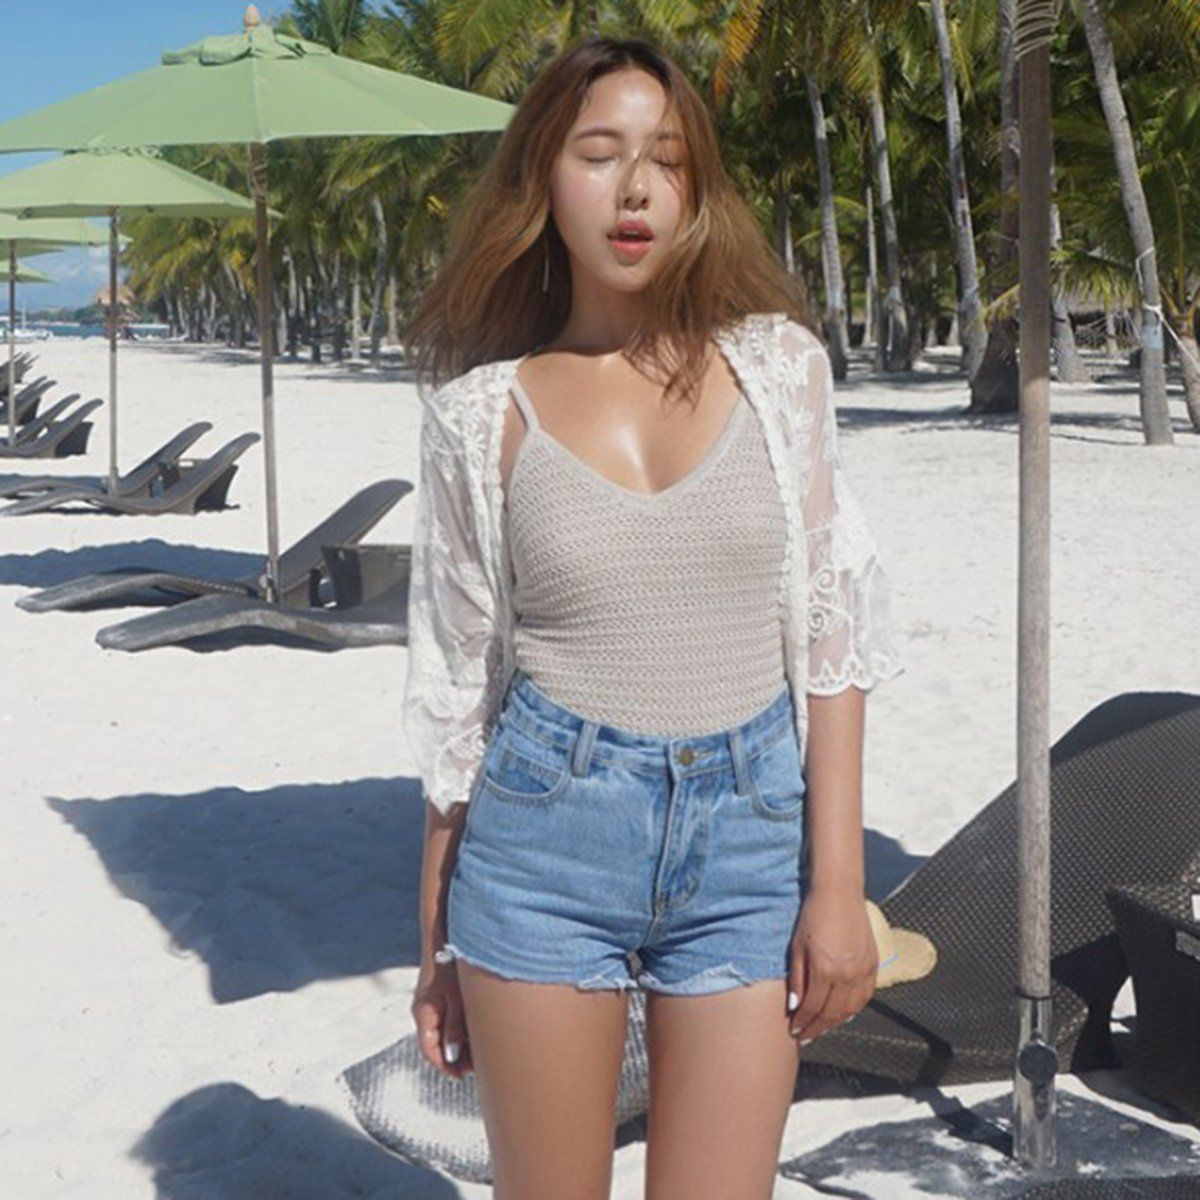 Women Lace Beach   Blouse   Kimono Cardigan Summer Cover Up Blusas Cover Up Sun   Blouses     Shirt   Tops   Blouse   Sexy Plus Size   Shirt   Tops